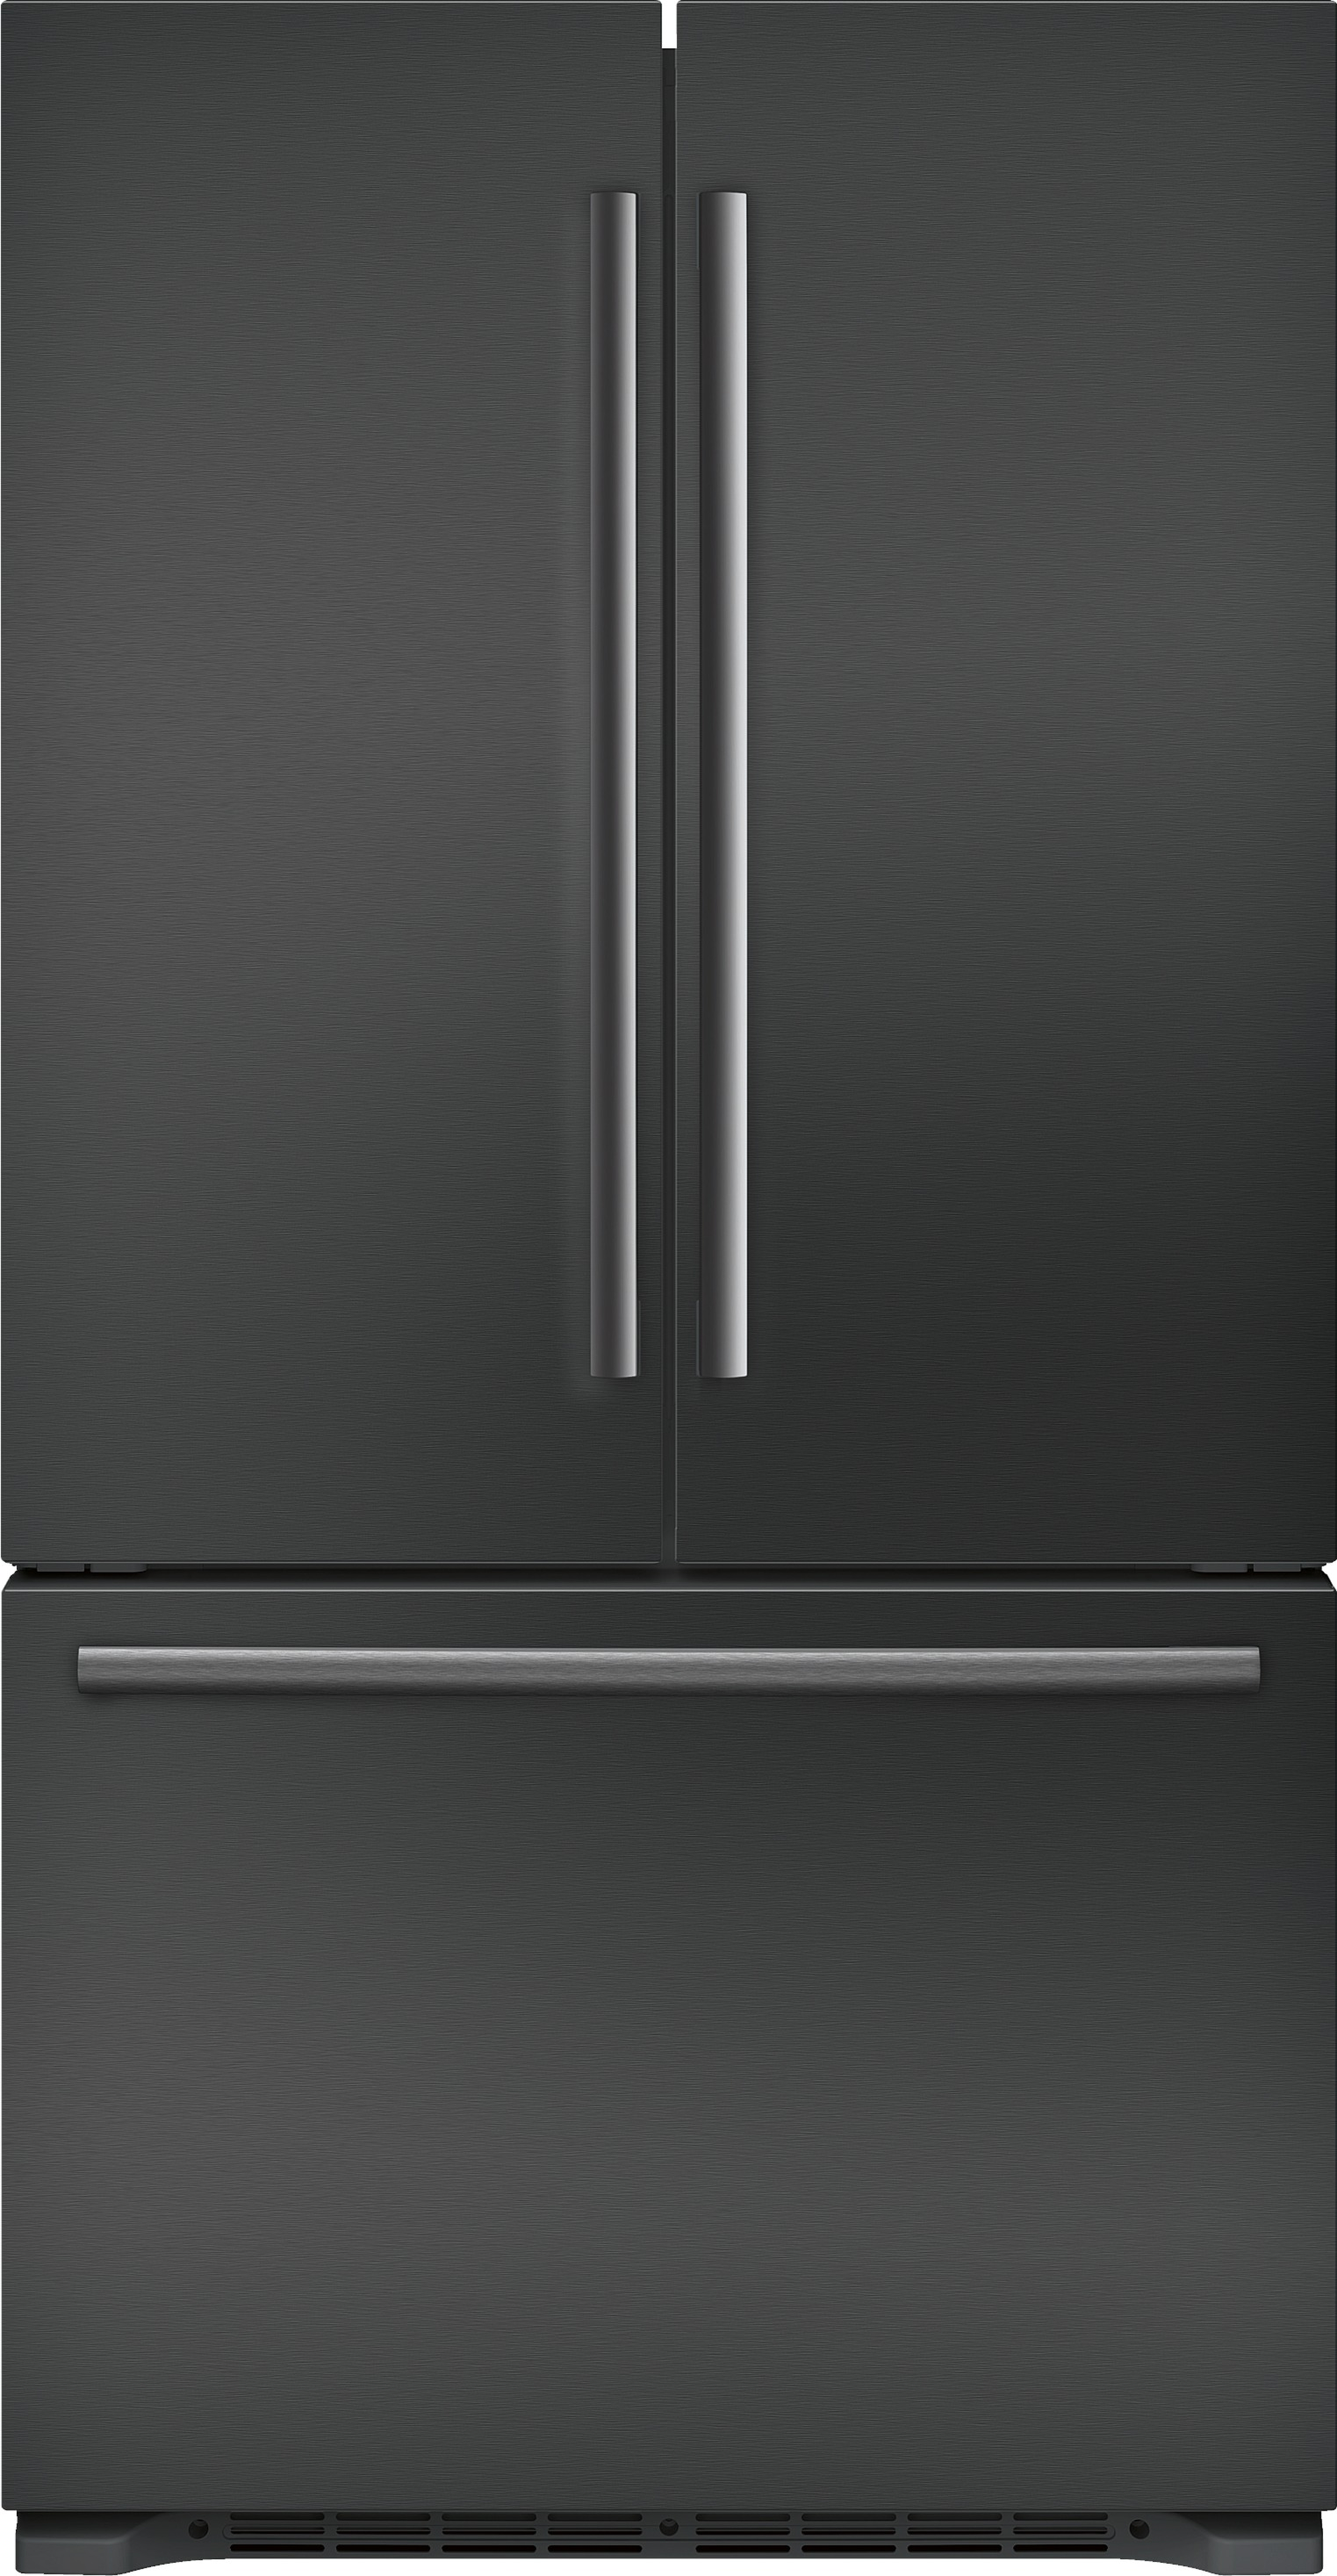 questions countertops countertop counter maple kit remodeling house forum depth refrigerators